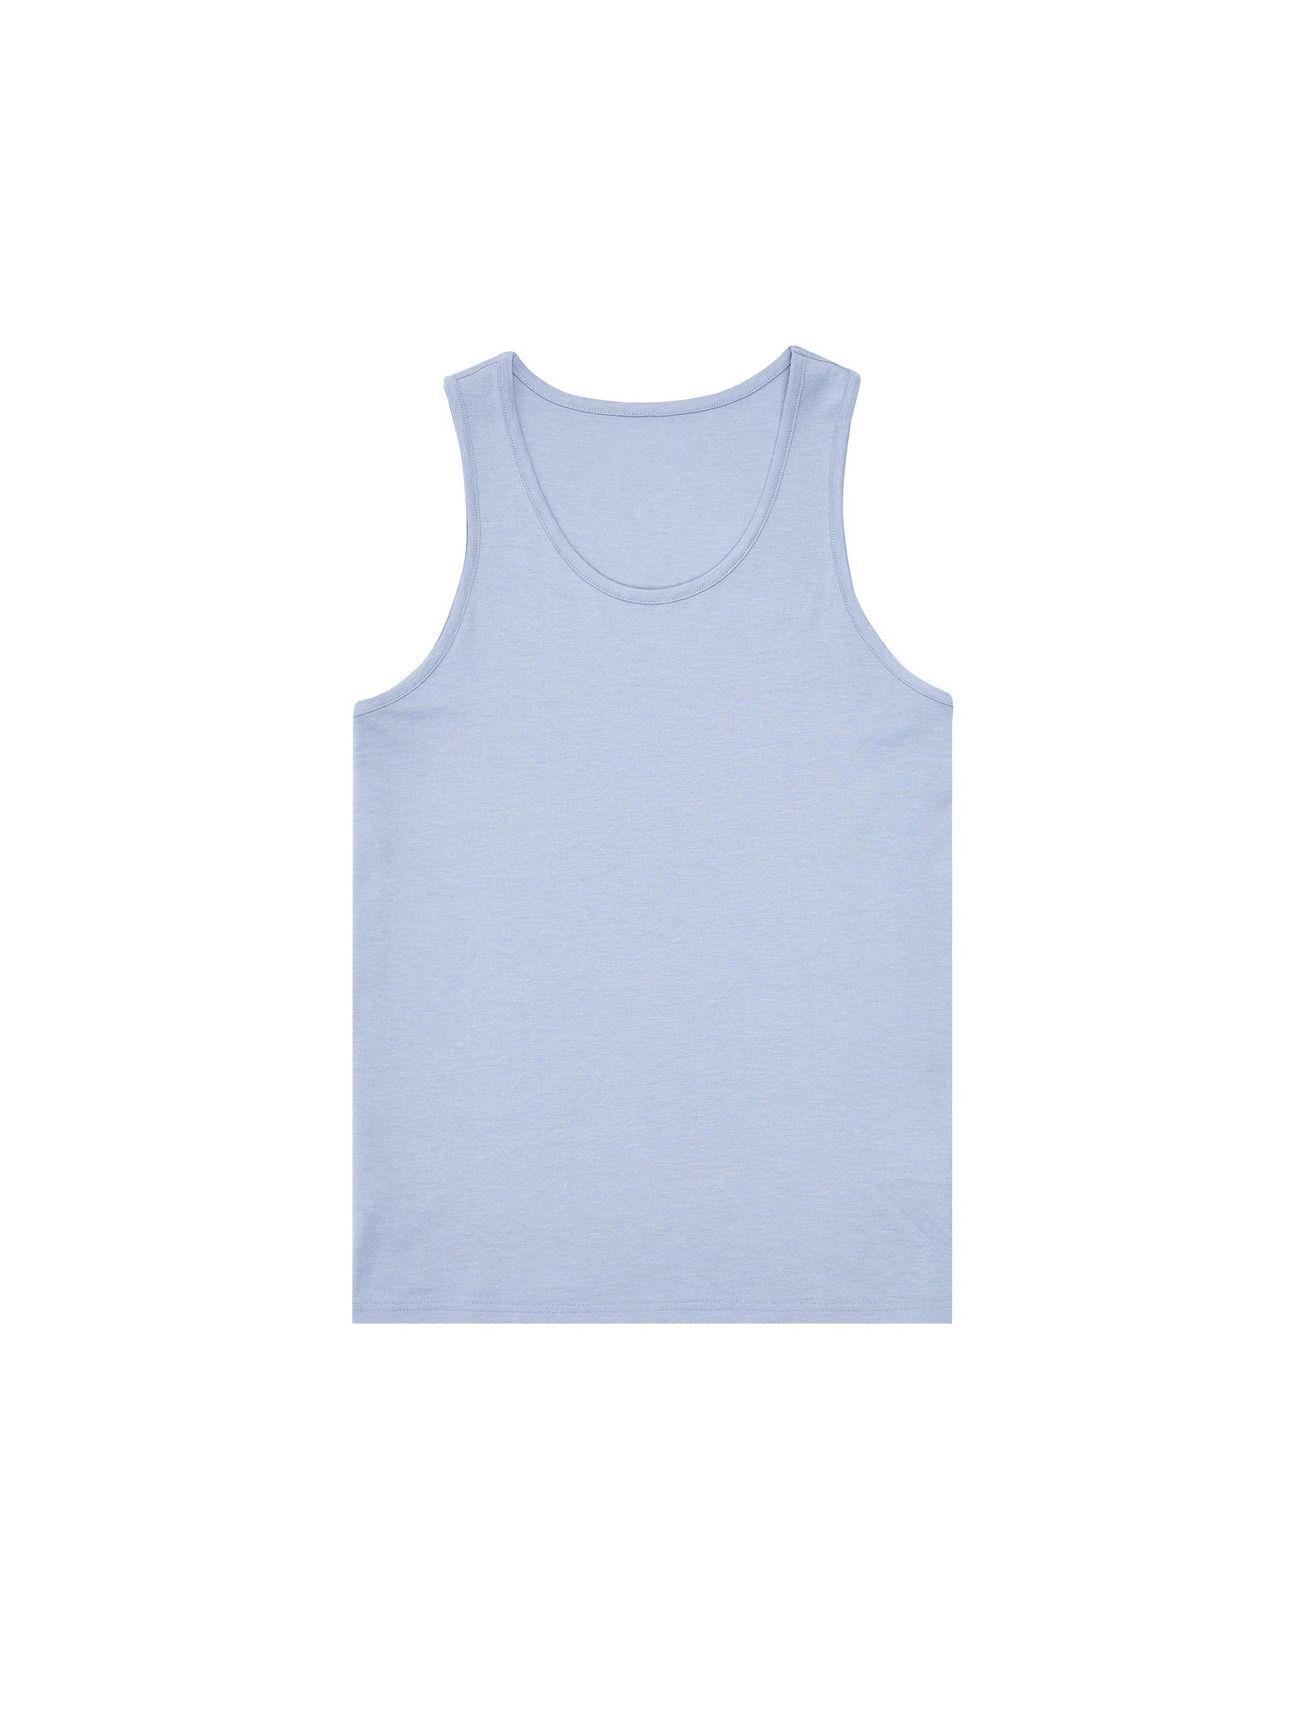 Wholesale Custom Man's Cotton Tank Top Basic Vest